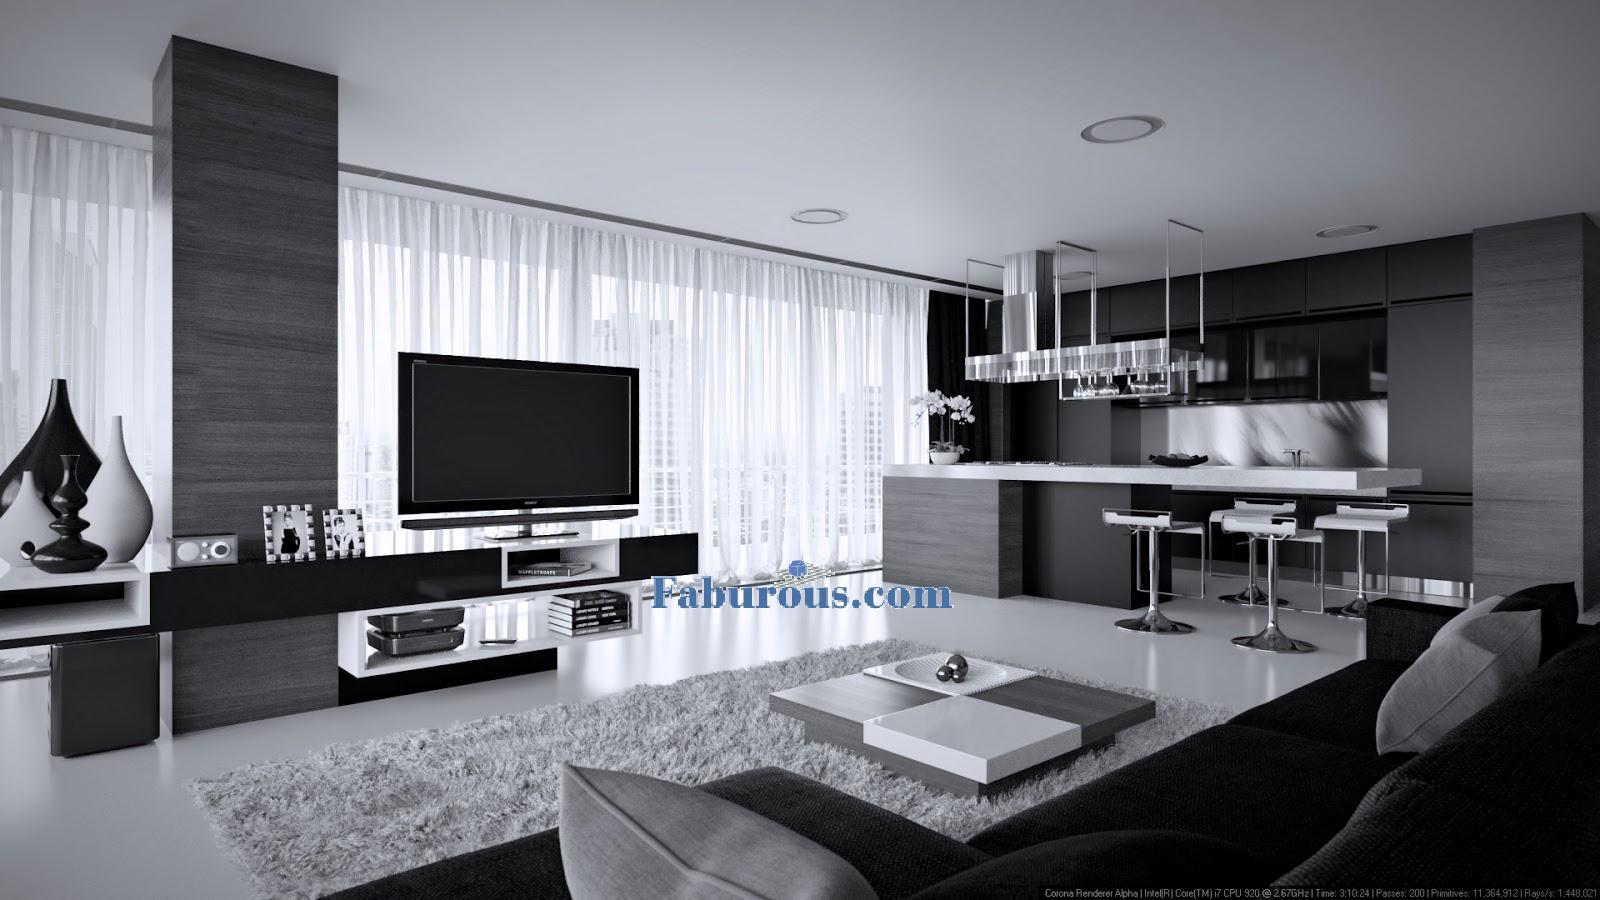 Modern cutting edge room design ideas Room builder